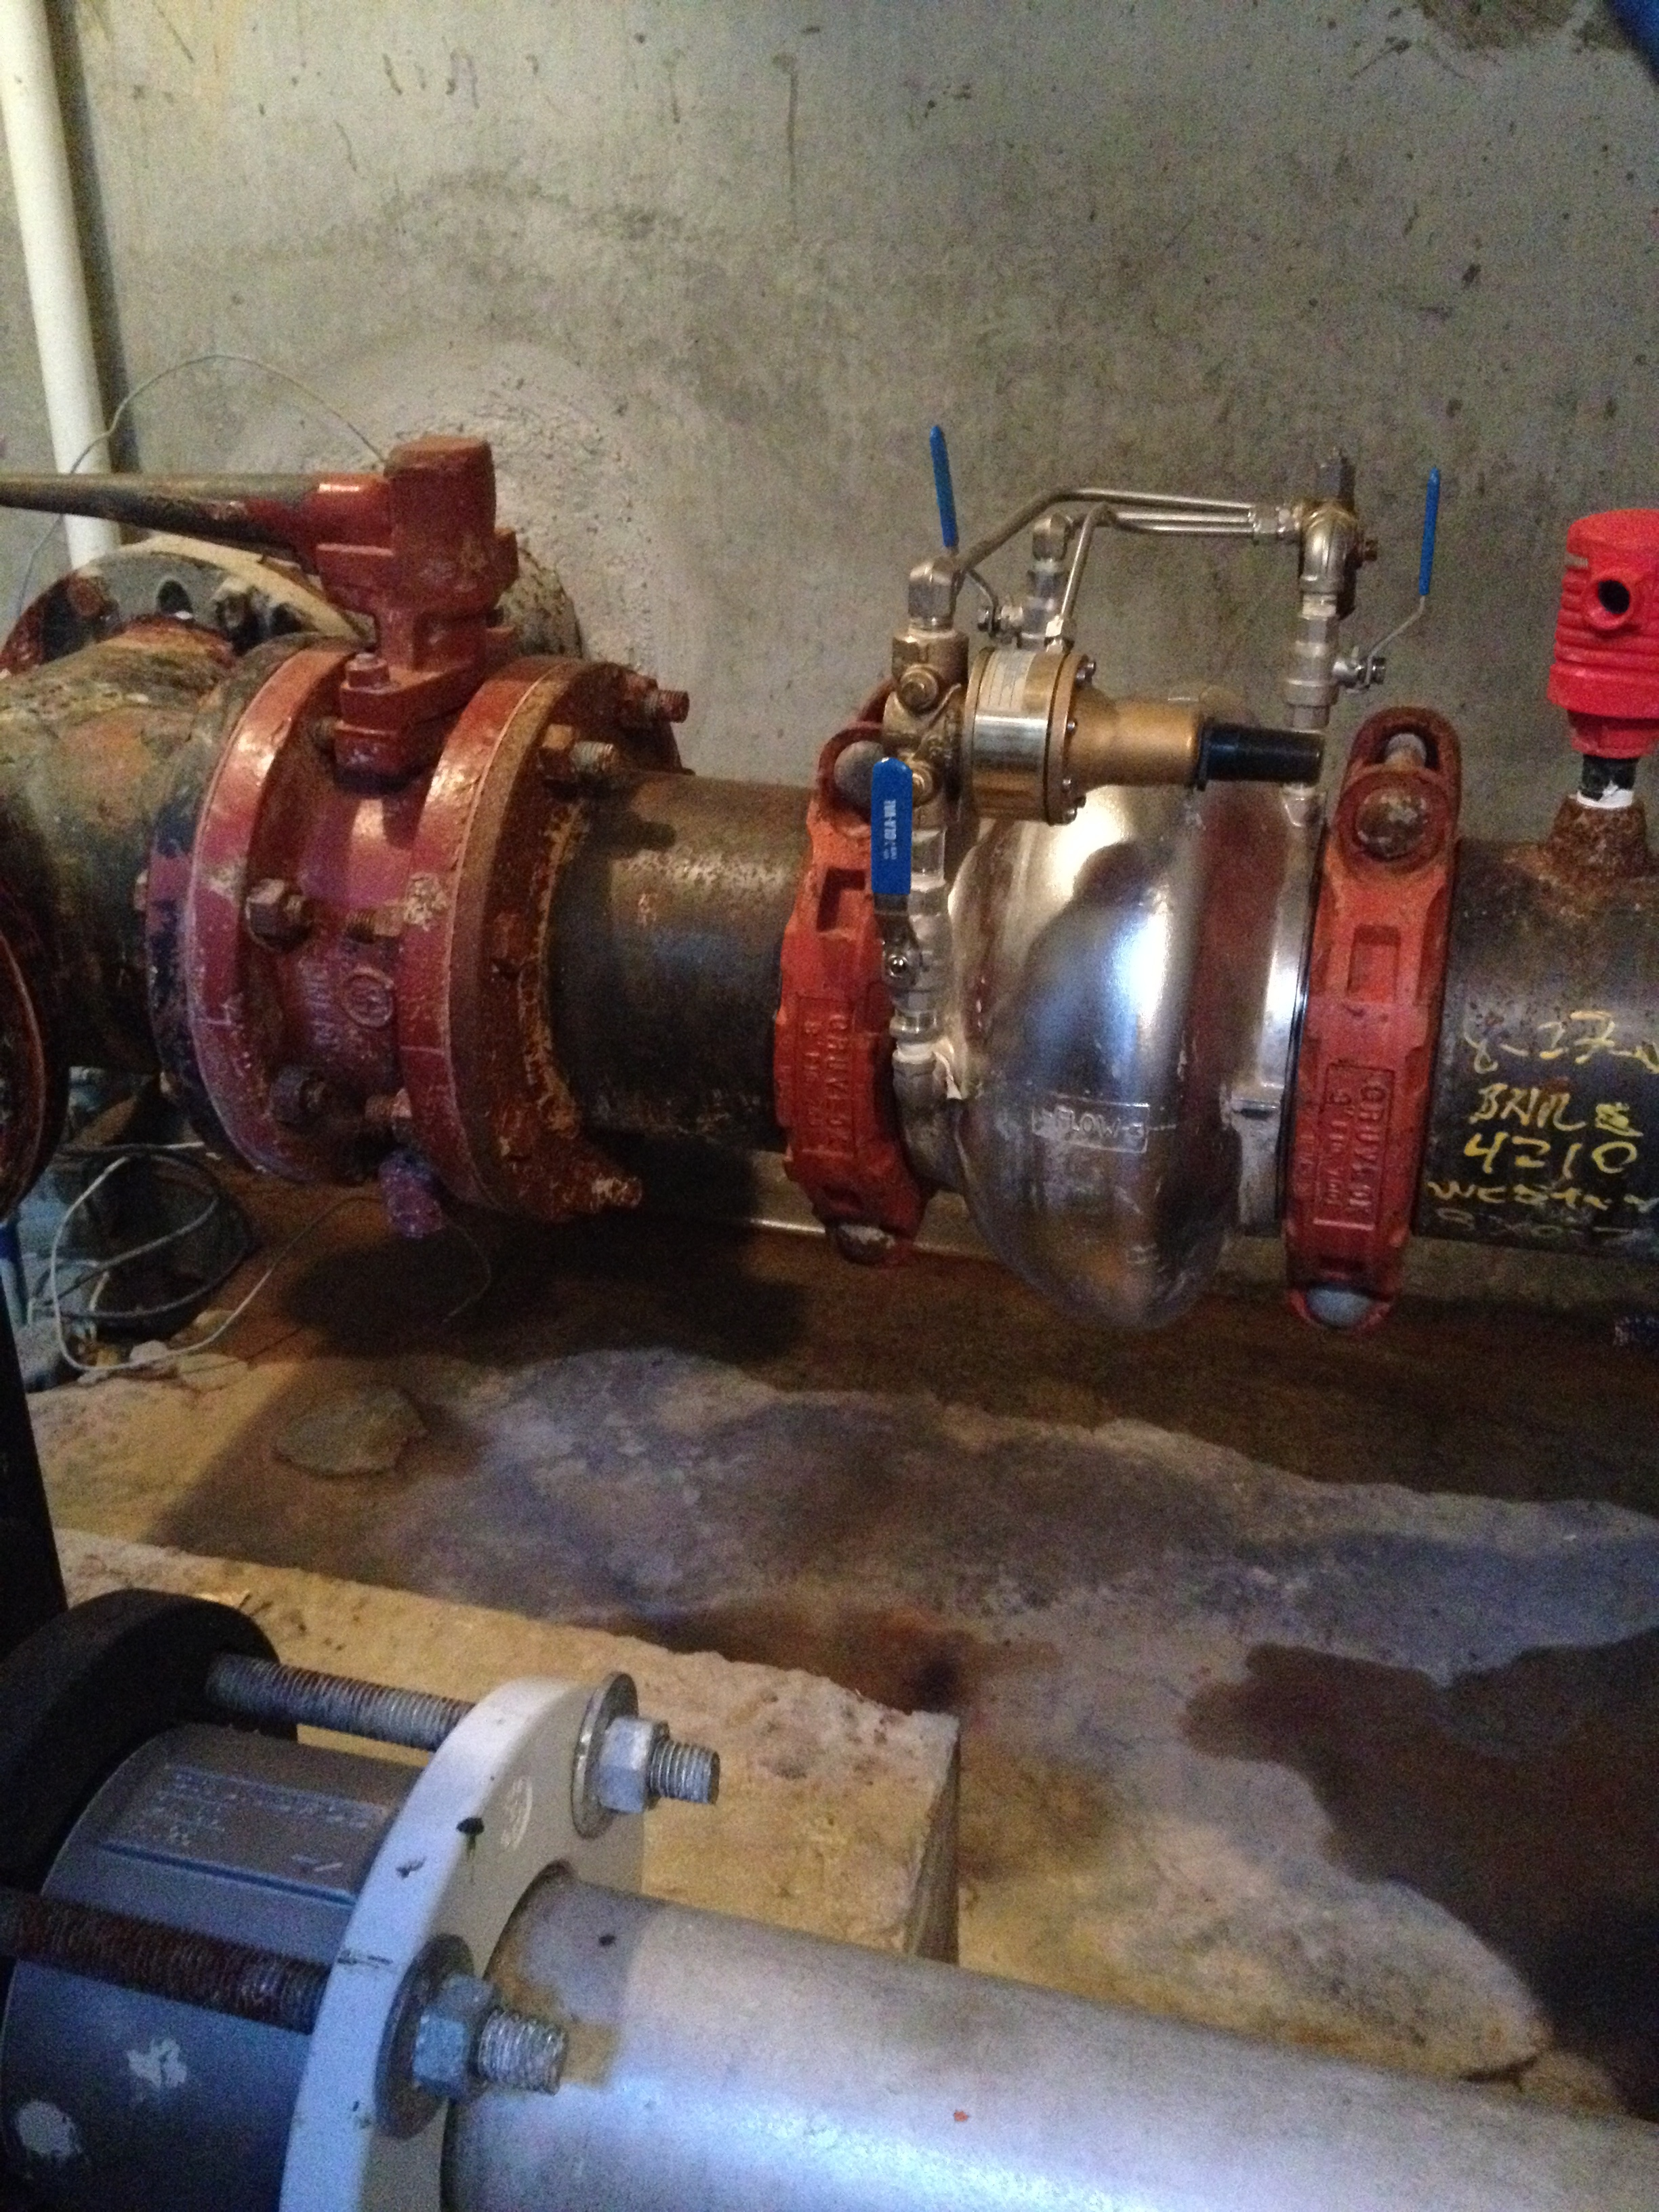 Booster     Station 1: - We serviced the PRV (Pressure Relief Valve) that has been out of service. The PRV controls or limits the pressure in our water system